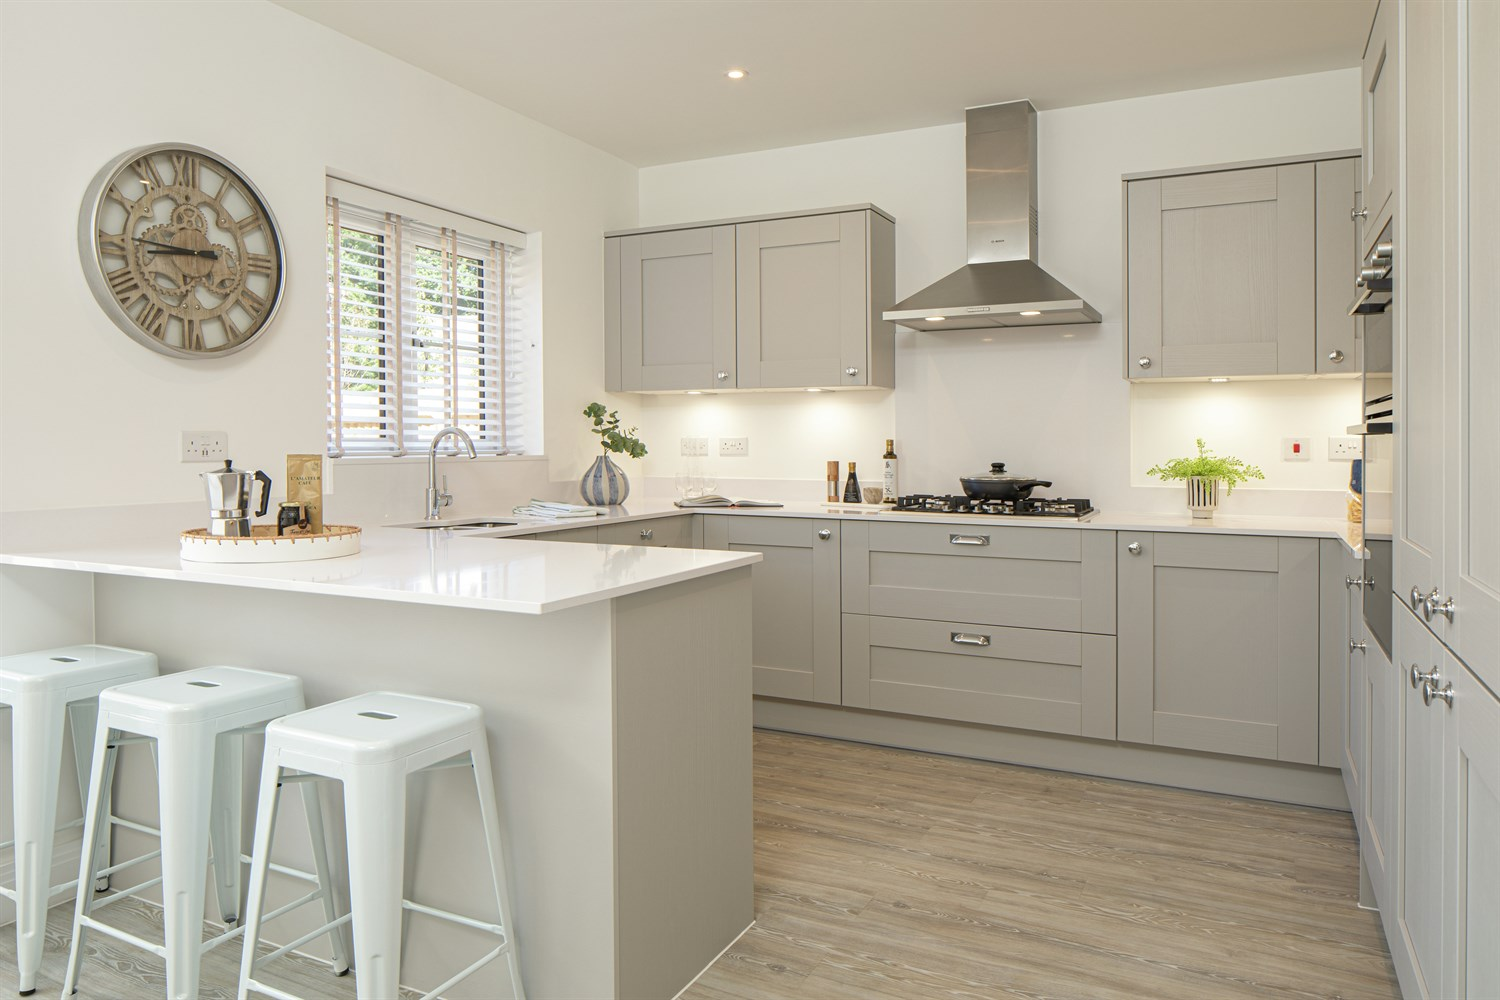 The Larfield at Buckler's Park - 4 bed detached, Old Wokingham Road, Crowthorne RG45 6LL